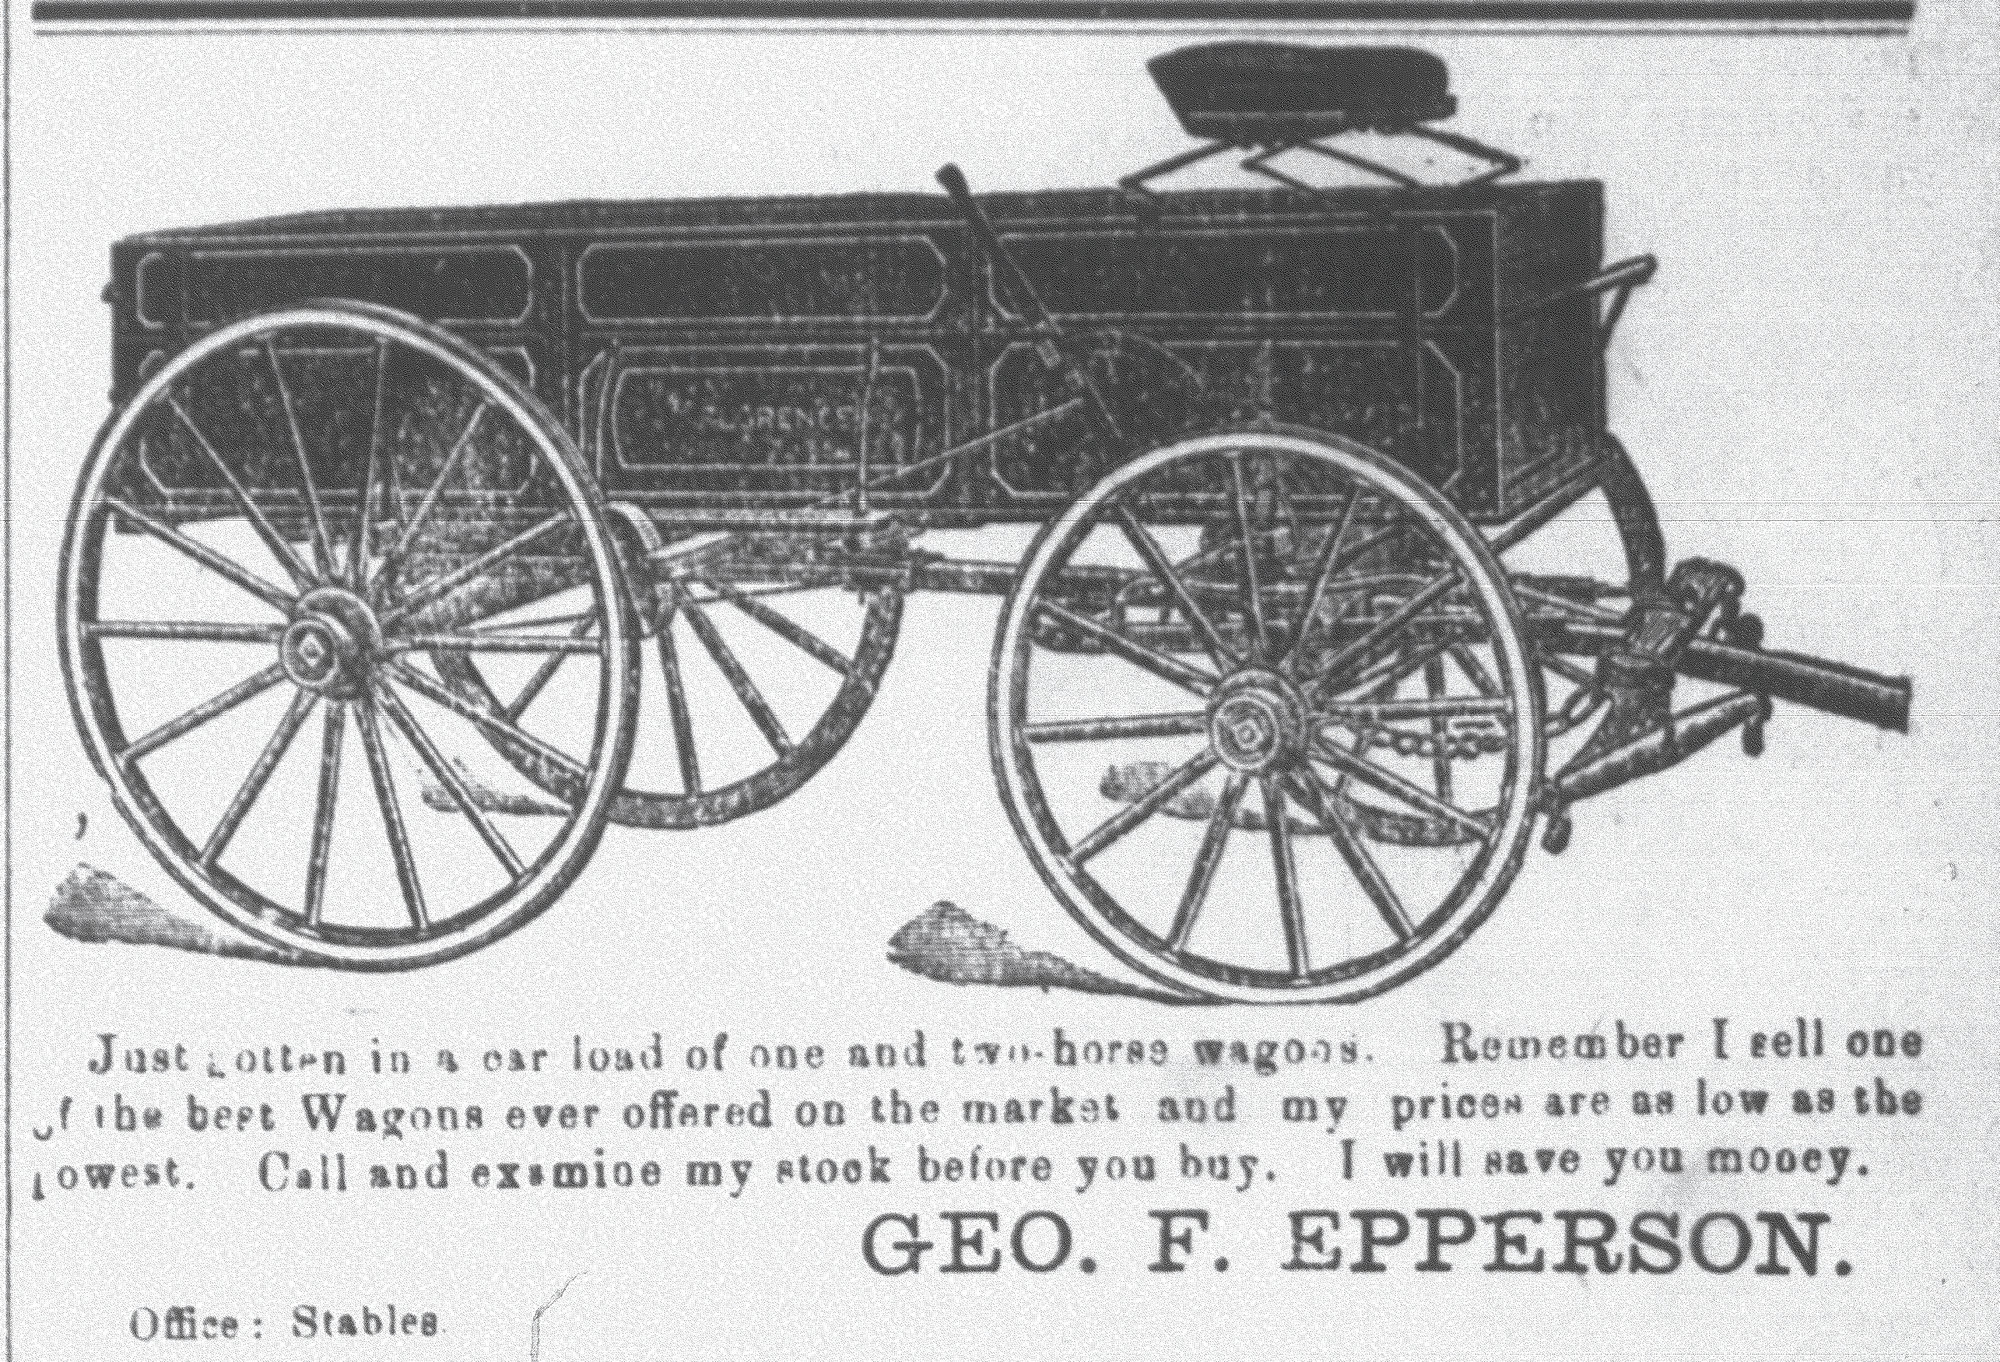 Three shops in Sumter made and sold wagons.